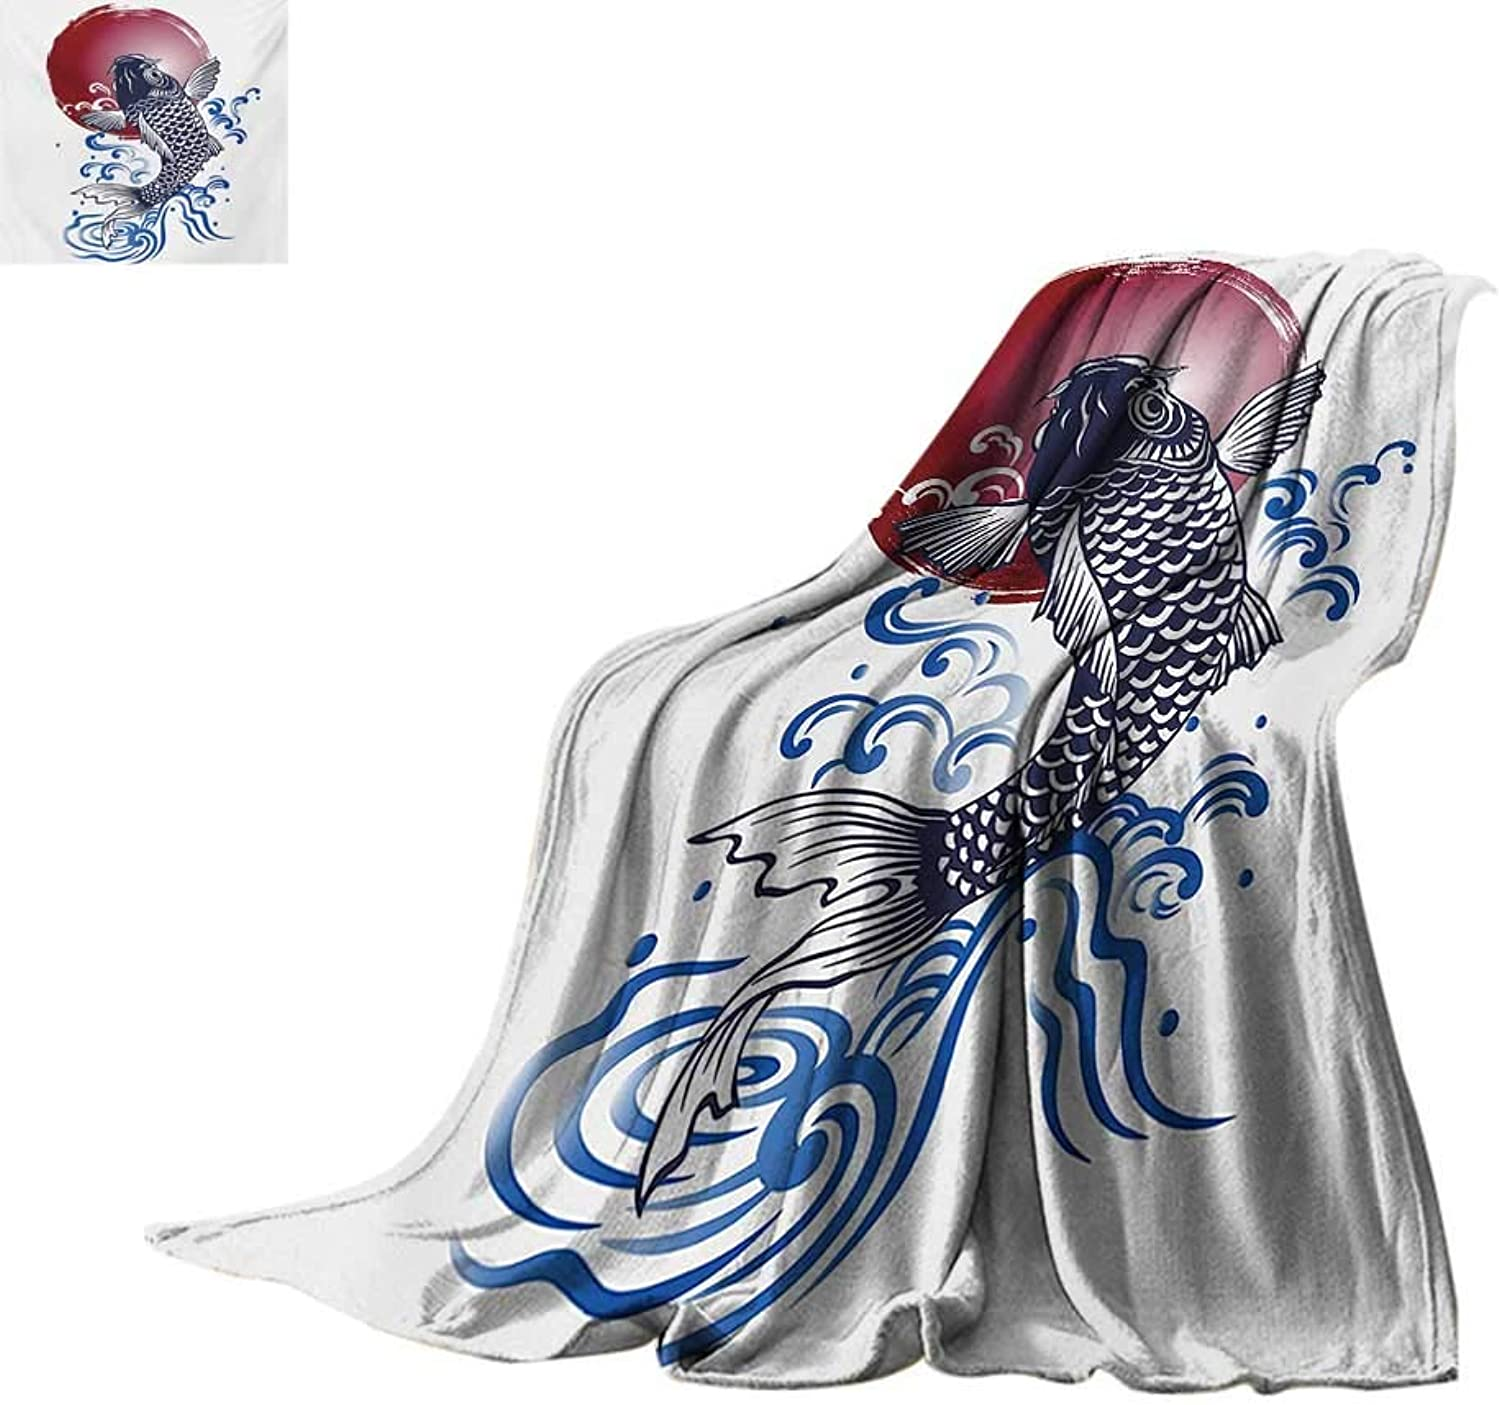 JapaneseOffice Throwing blanketOrnate Japanese Brocaded Carp Fin with Red Circular Form Eastern Sea colord GraphicOffice Warm Blanket 62 x60  bluee